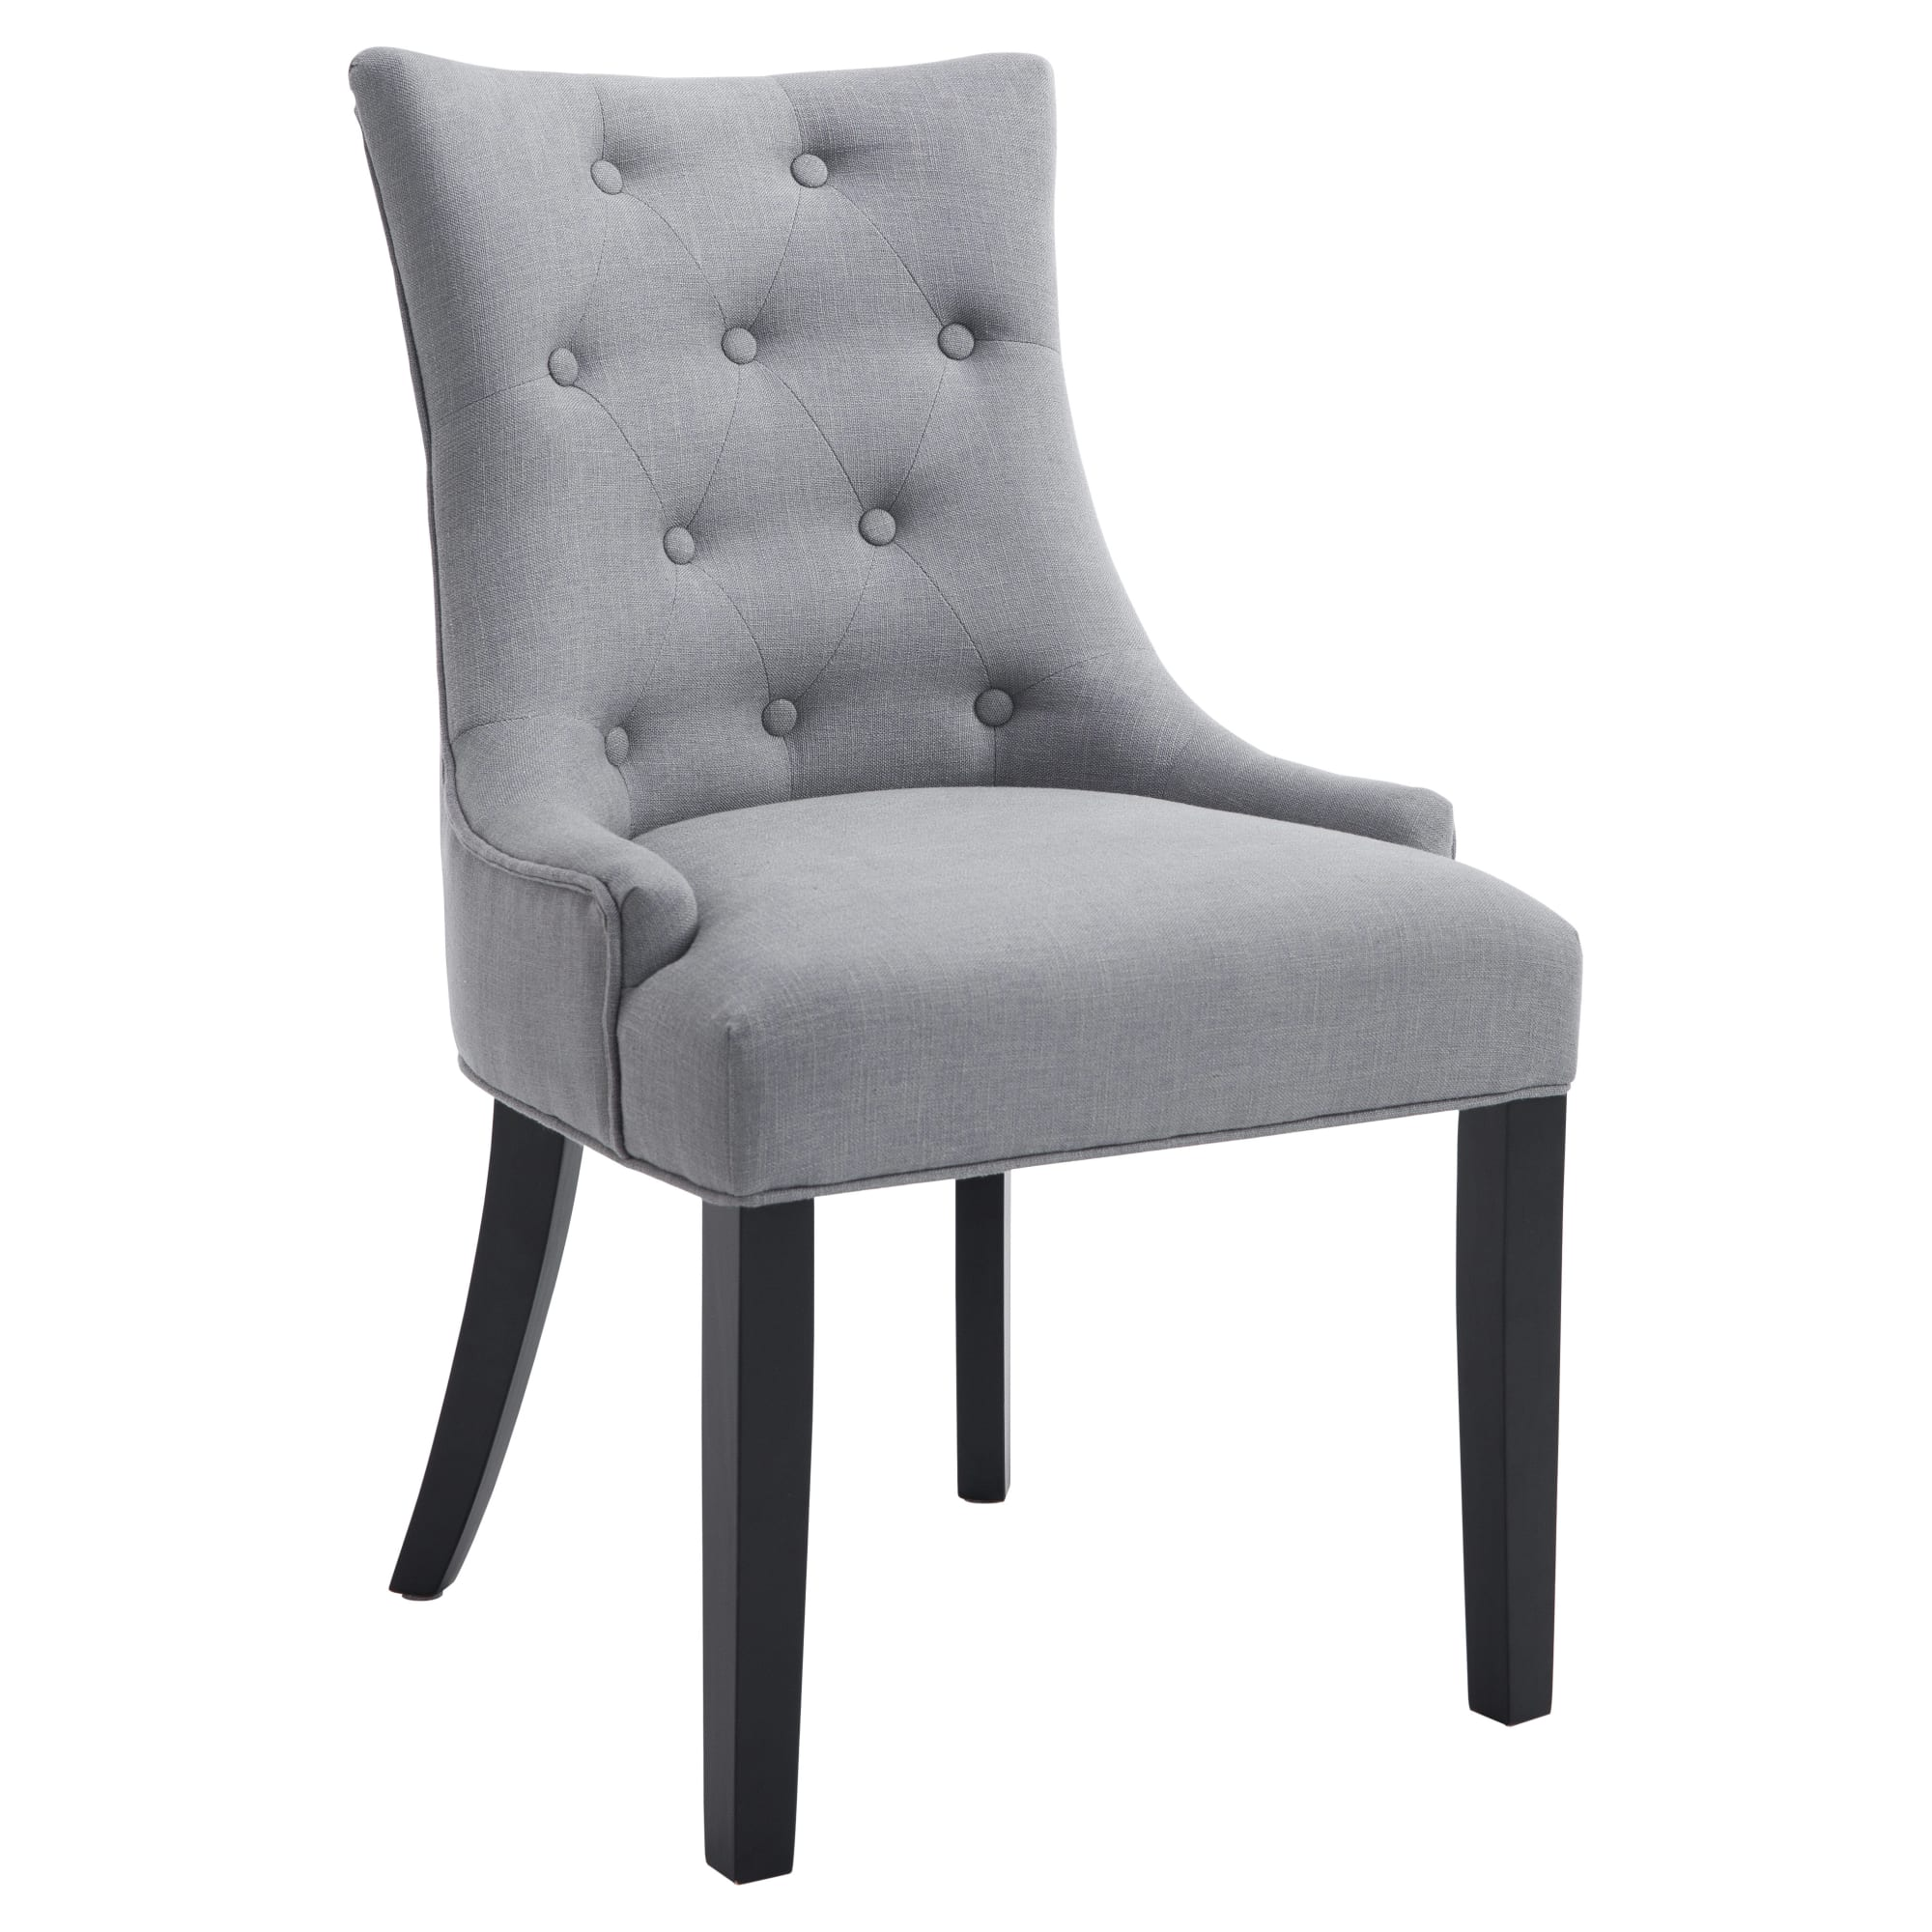 Maso Upholstered Chair